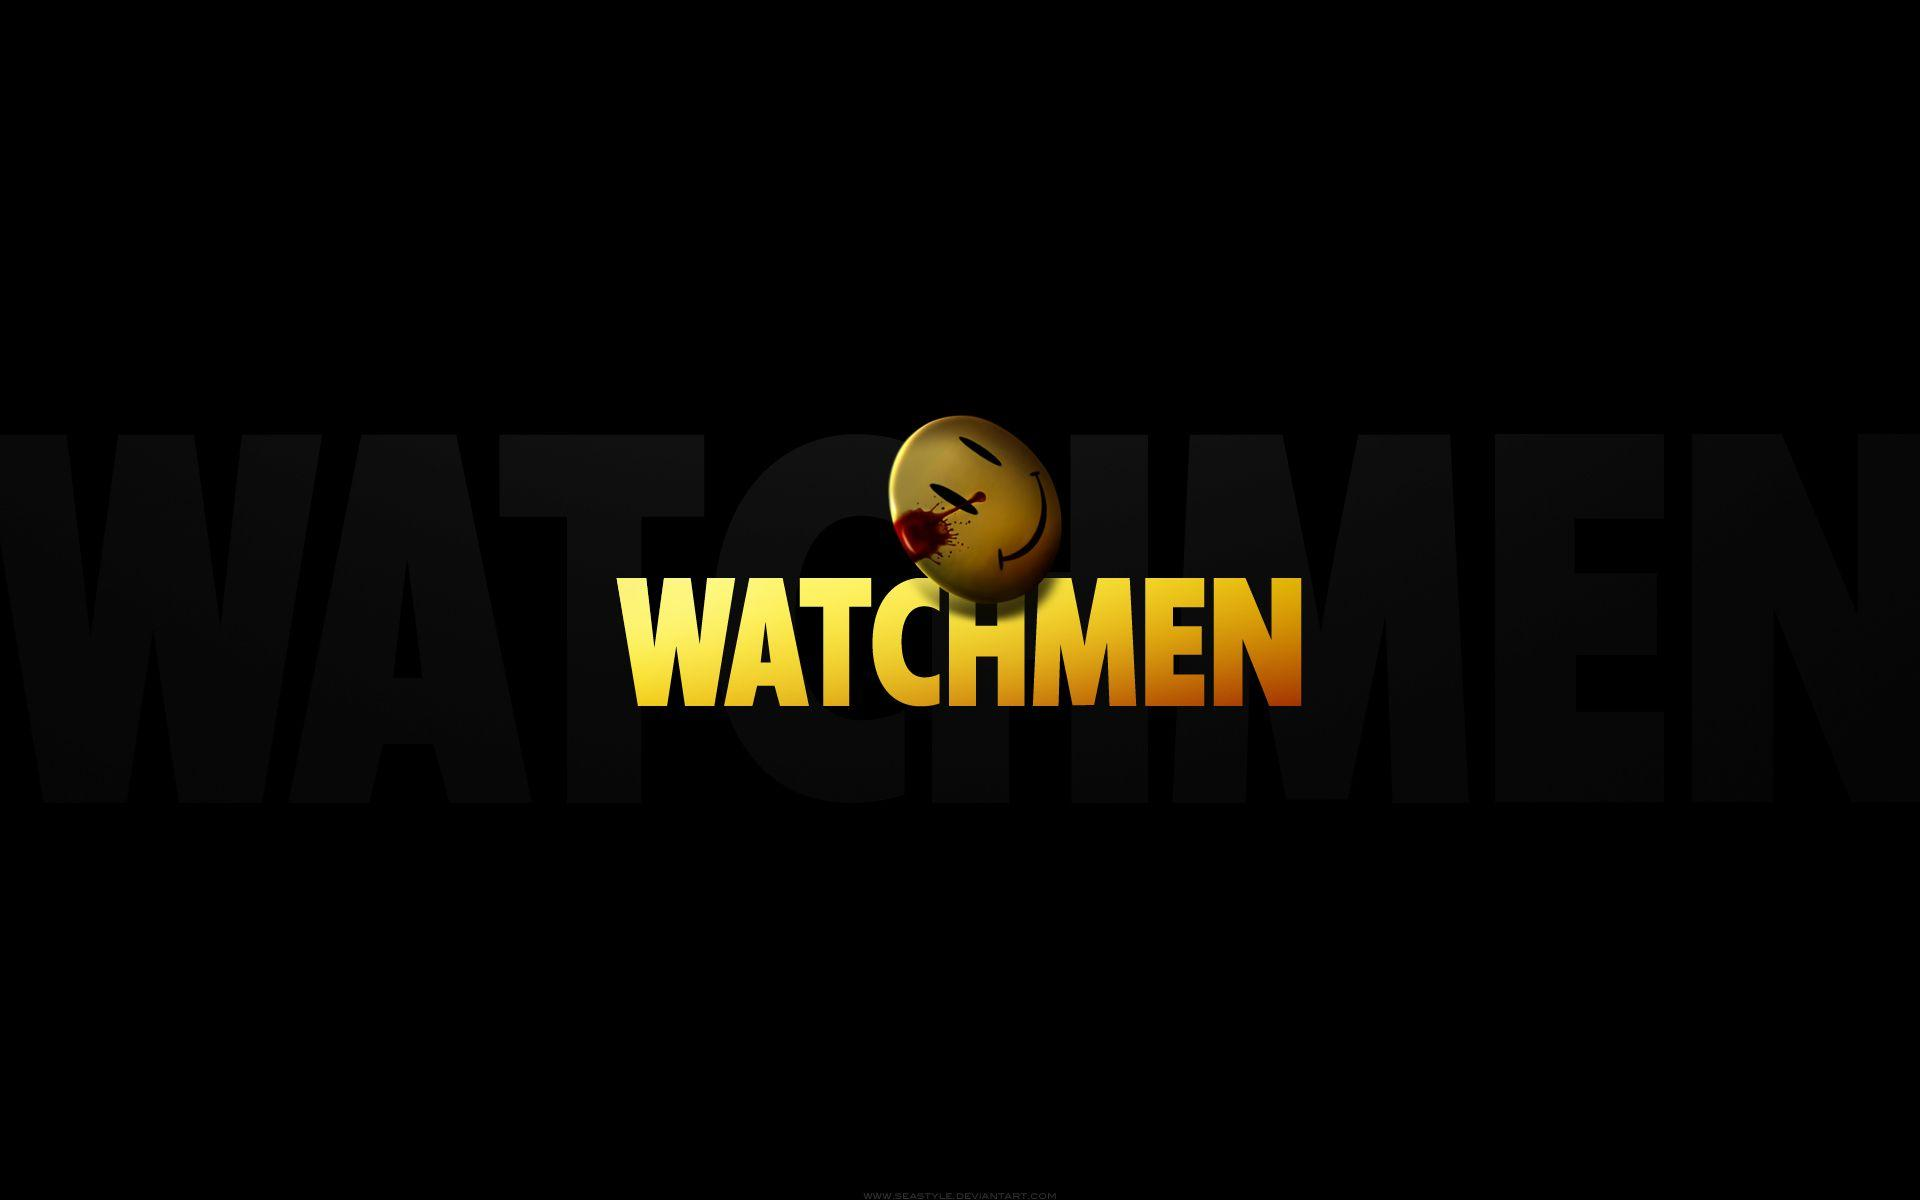 Watchmen Wallpapers – Movies